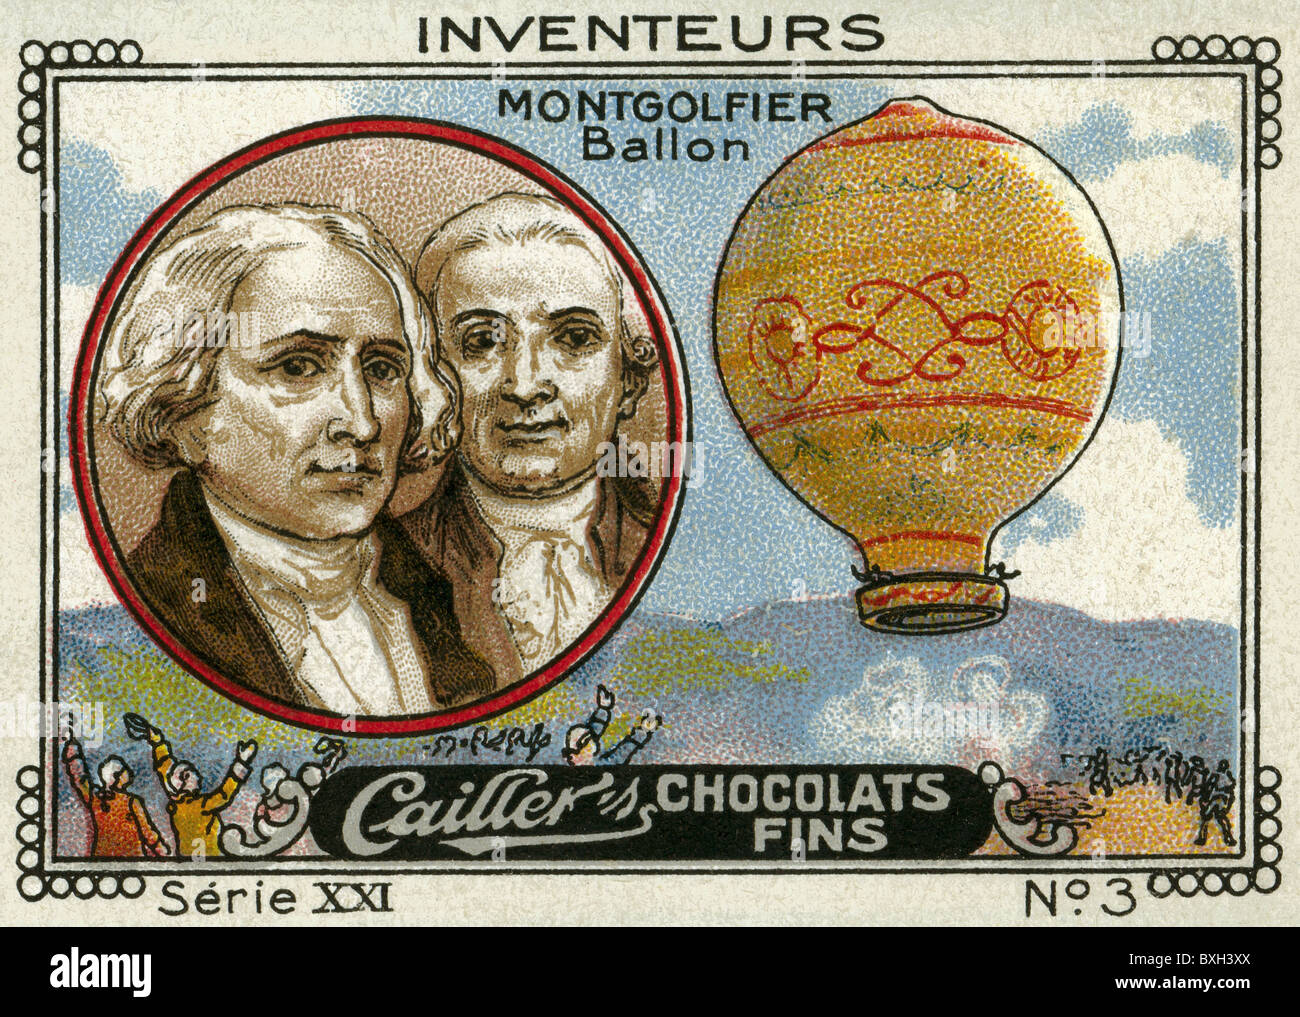 Image result for joseph and jacques montgolfier hot air balloon